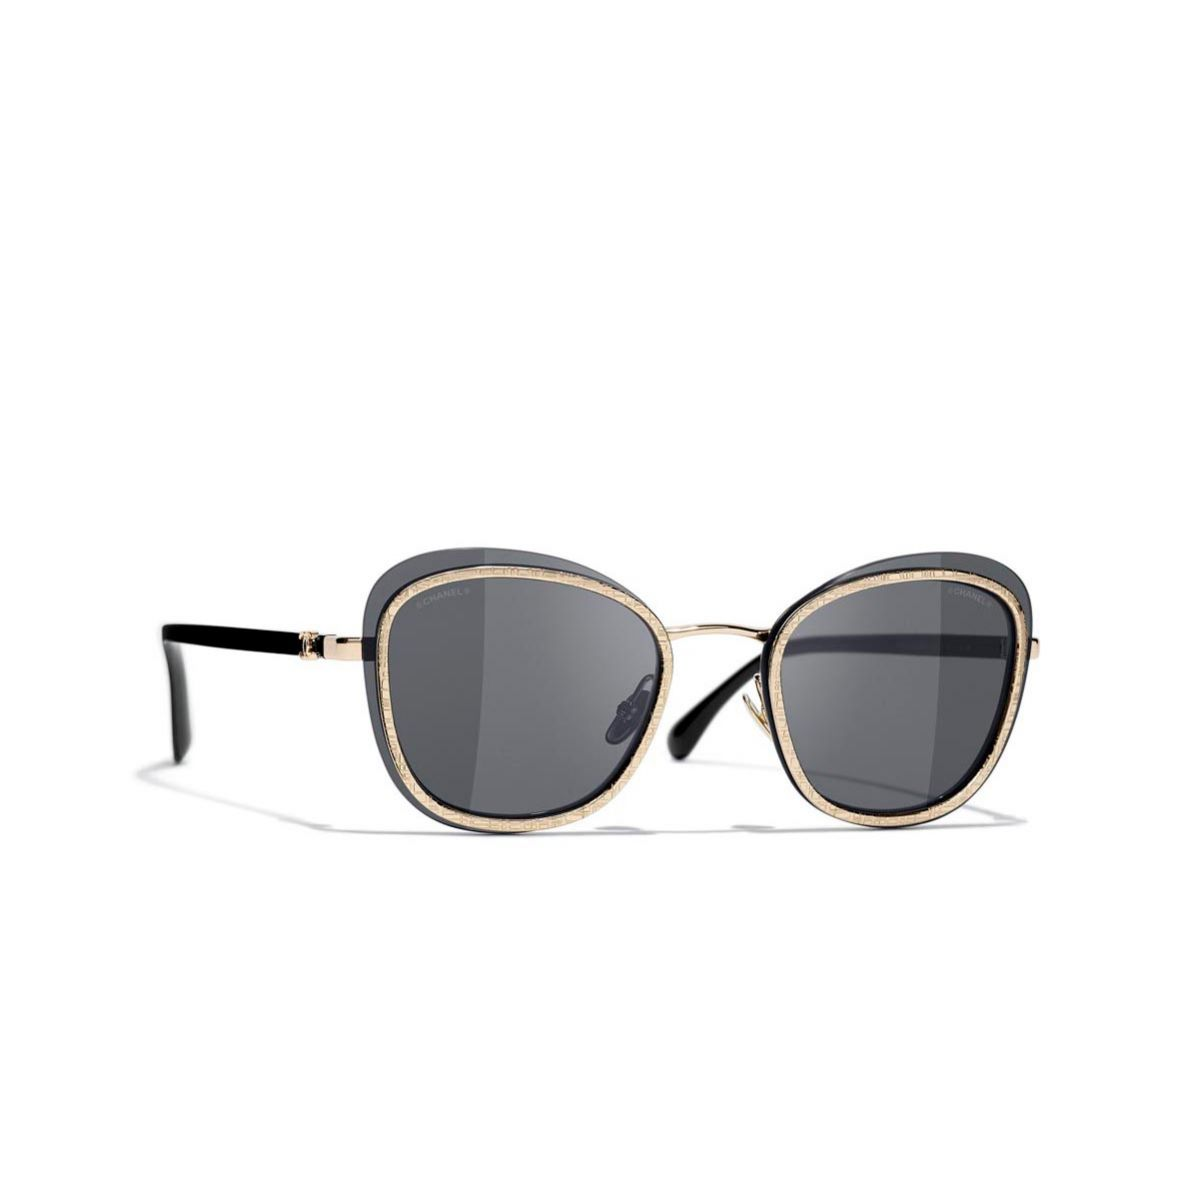 Pantos Sunglasses 285 Sunglasses